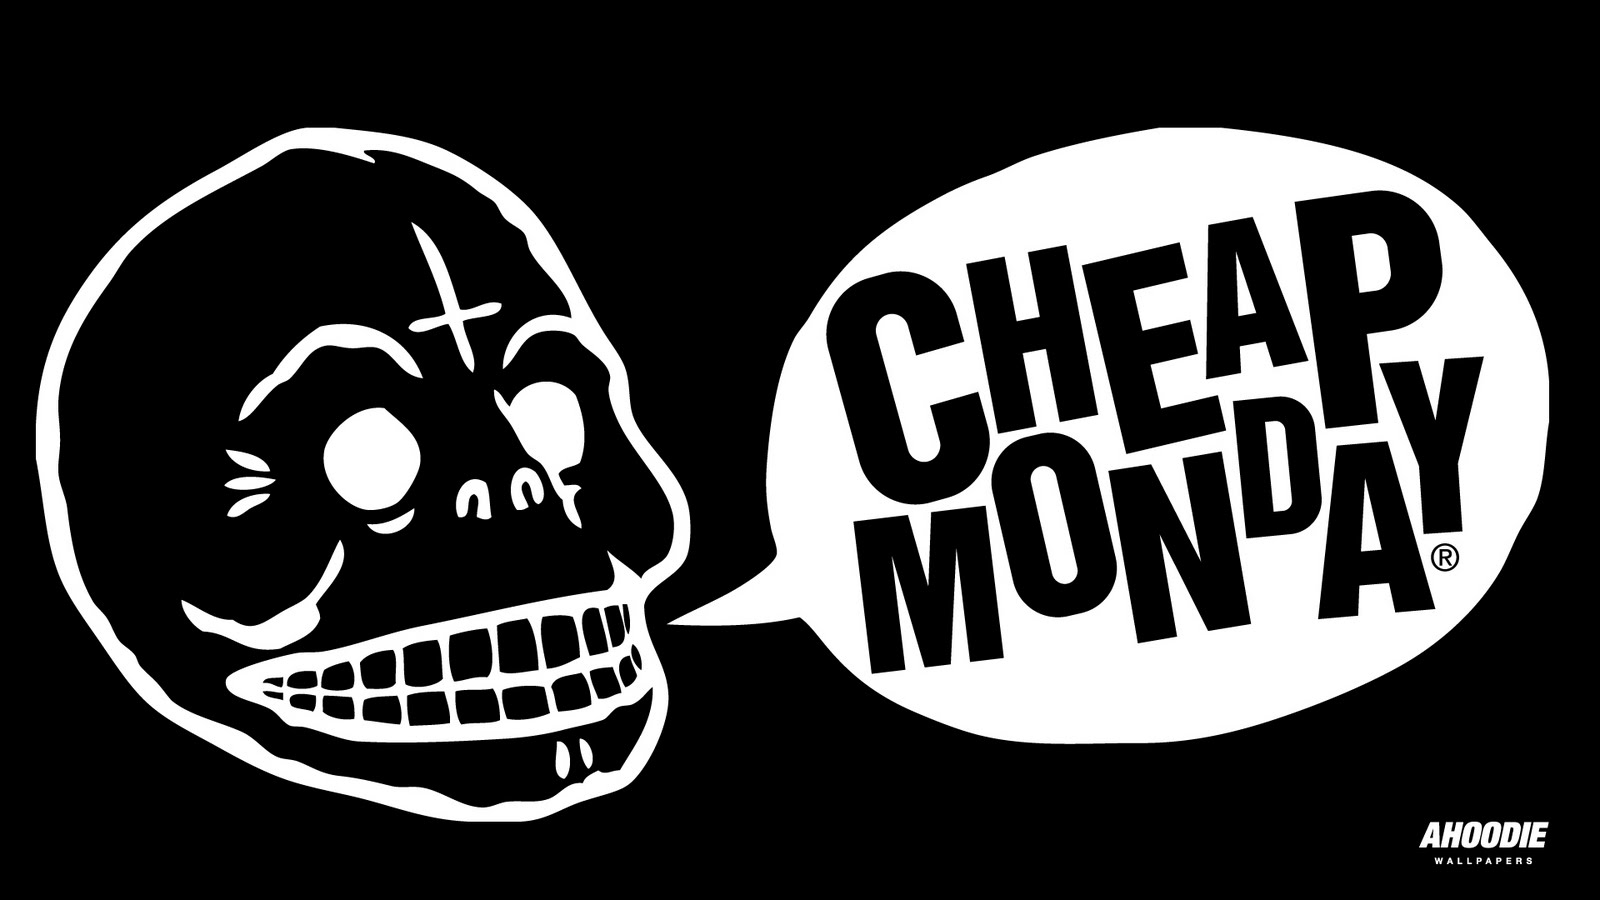 Cheap Monday With that characteristic skull logo and a high-end attitude, Cheap Monday is renowned for producing premium denim, dungarees and signature dresses at an affordable price. It's the go-to for Swedish minimalism dashed with eccentricity.